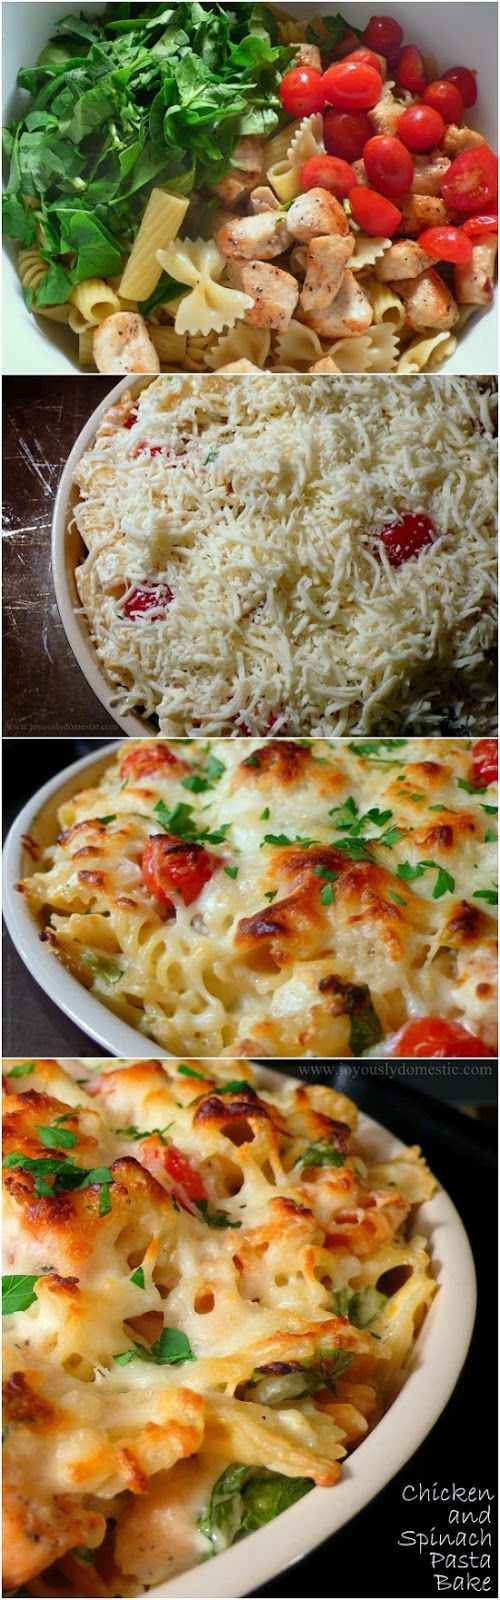 all things katie marie: Chicken & Spinach Pasta Bake